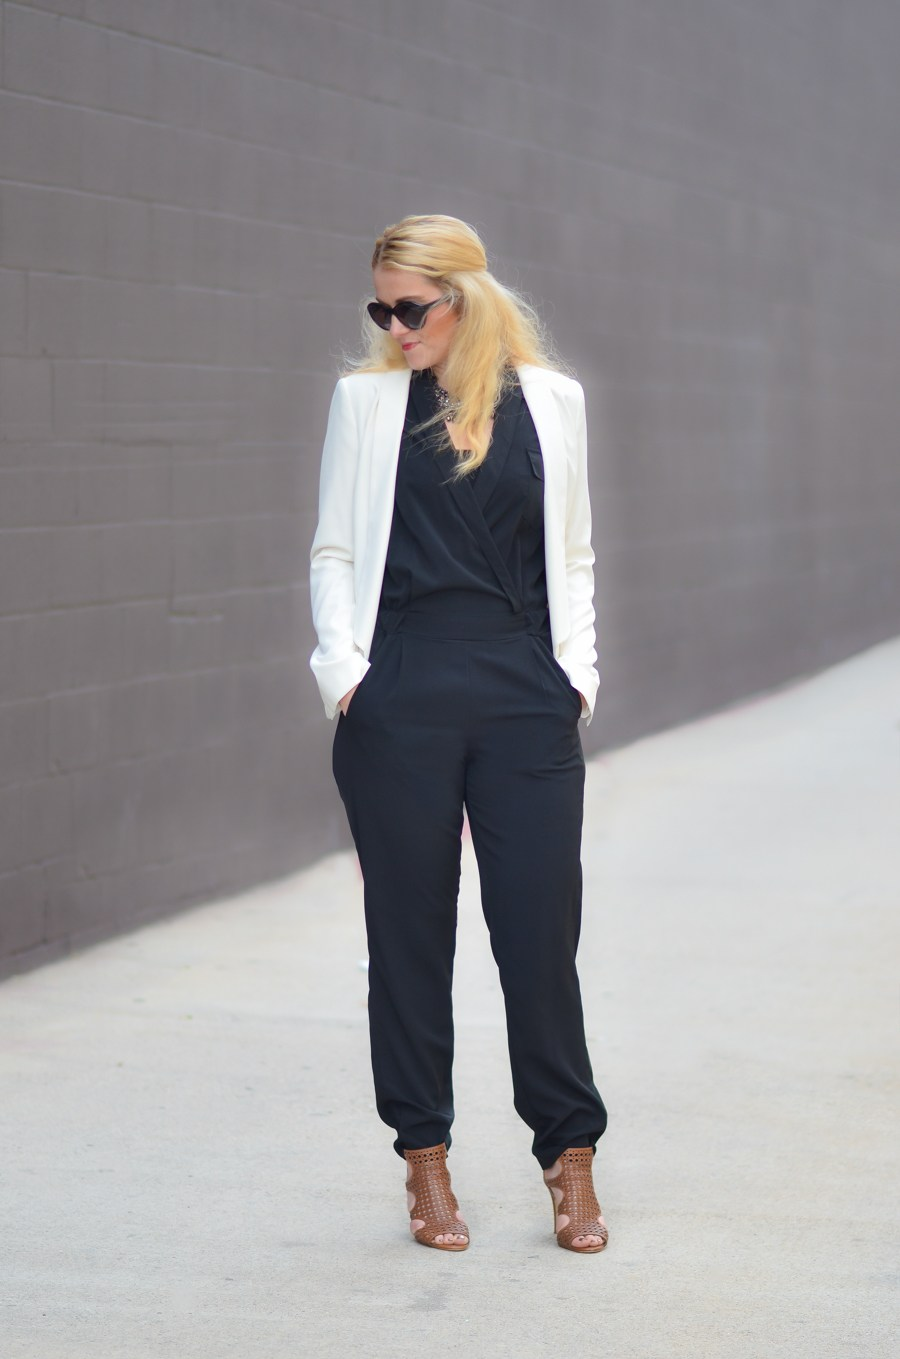 white blazer outfit inspiration for this season  luci's